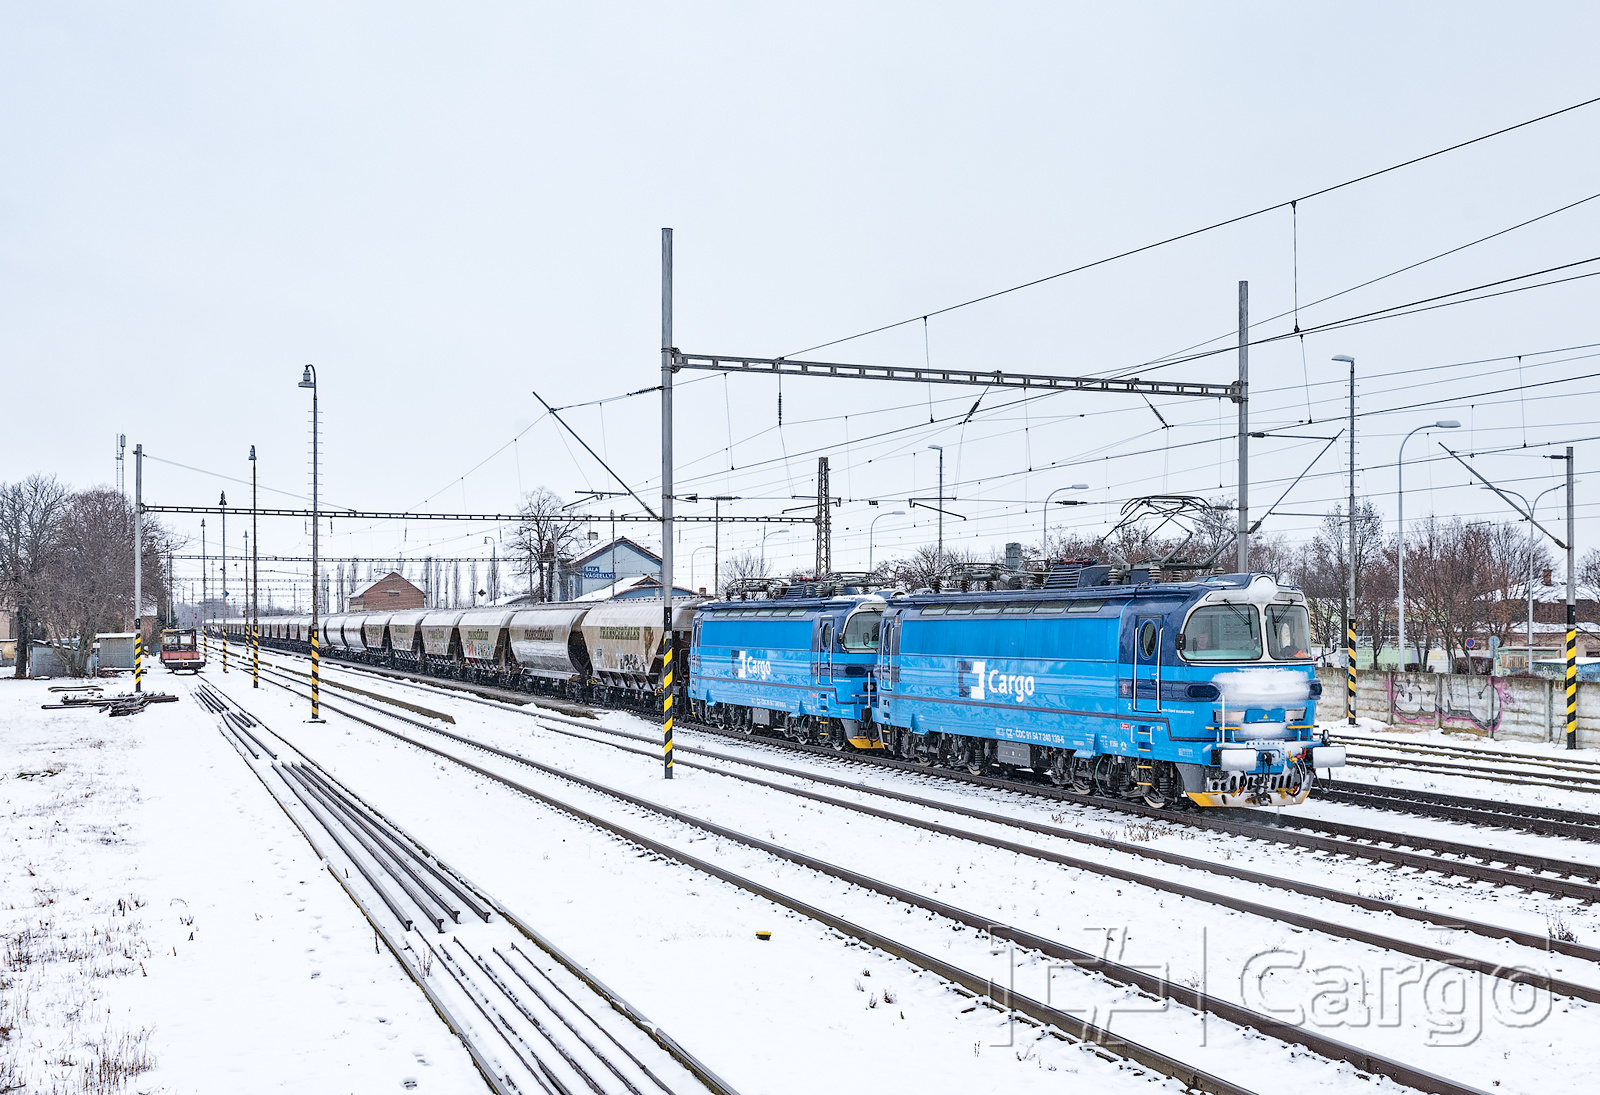 The rail carrier Carbo Rail strengthens its position